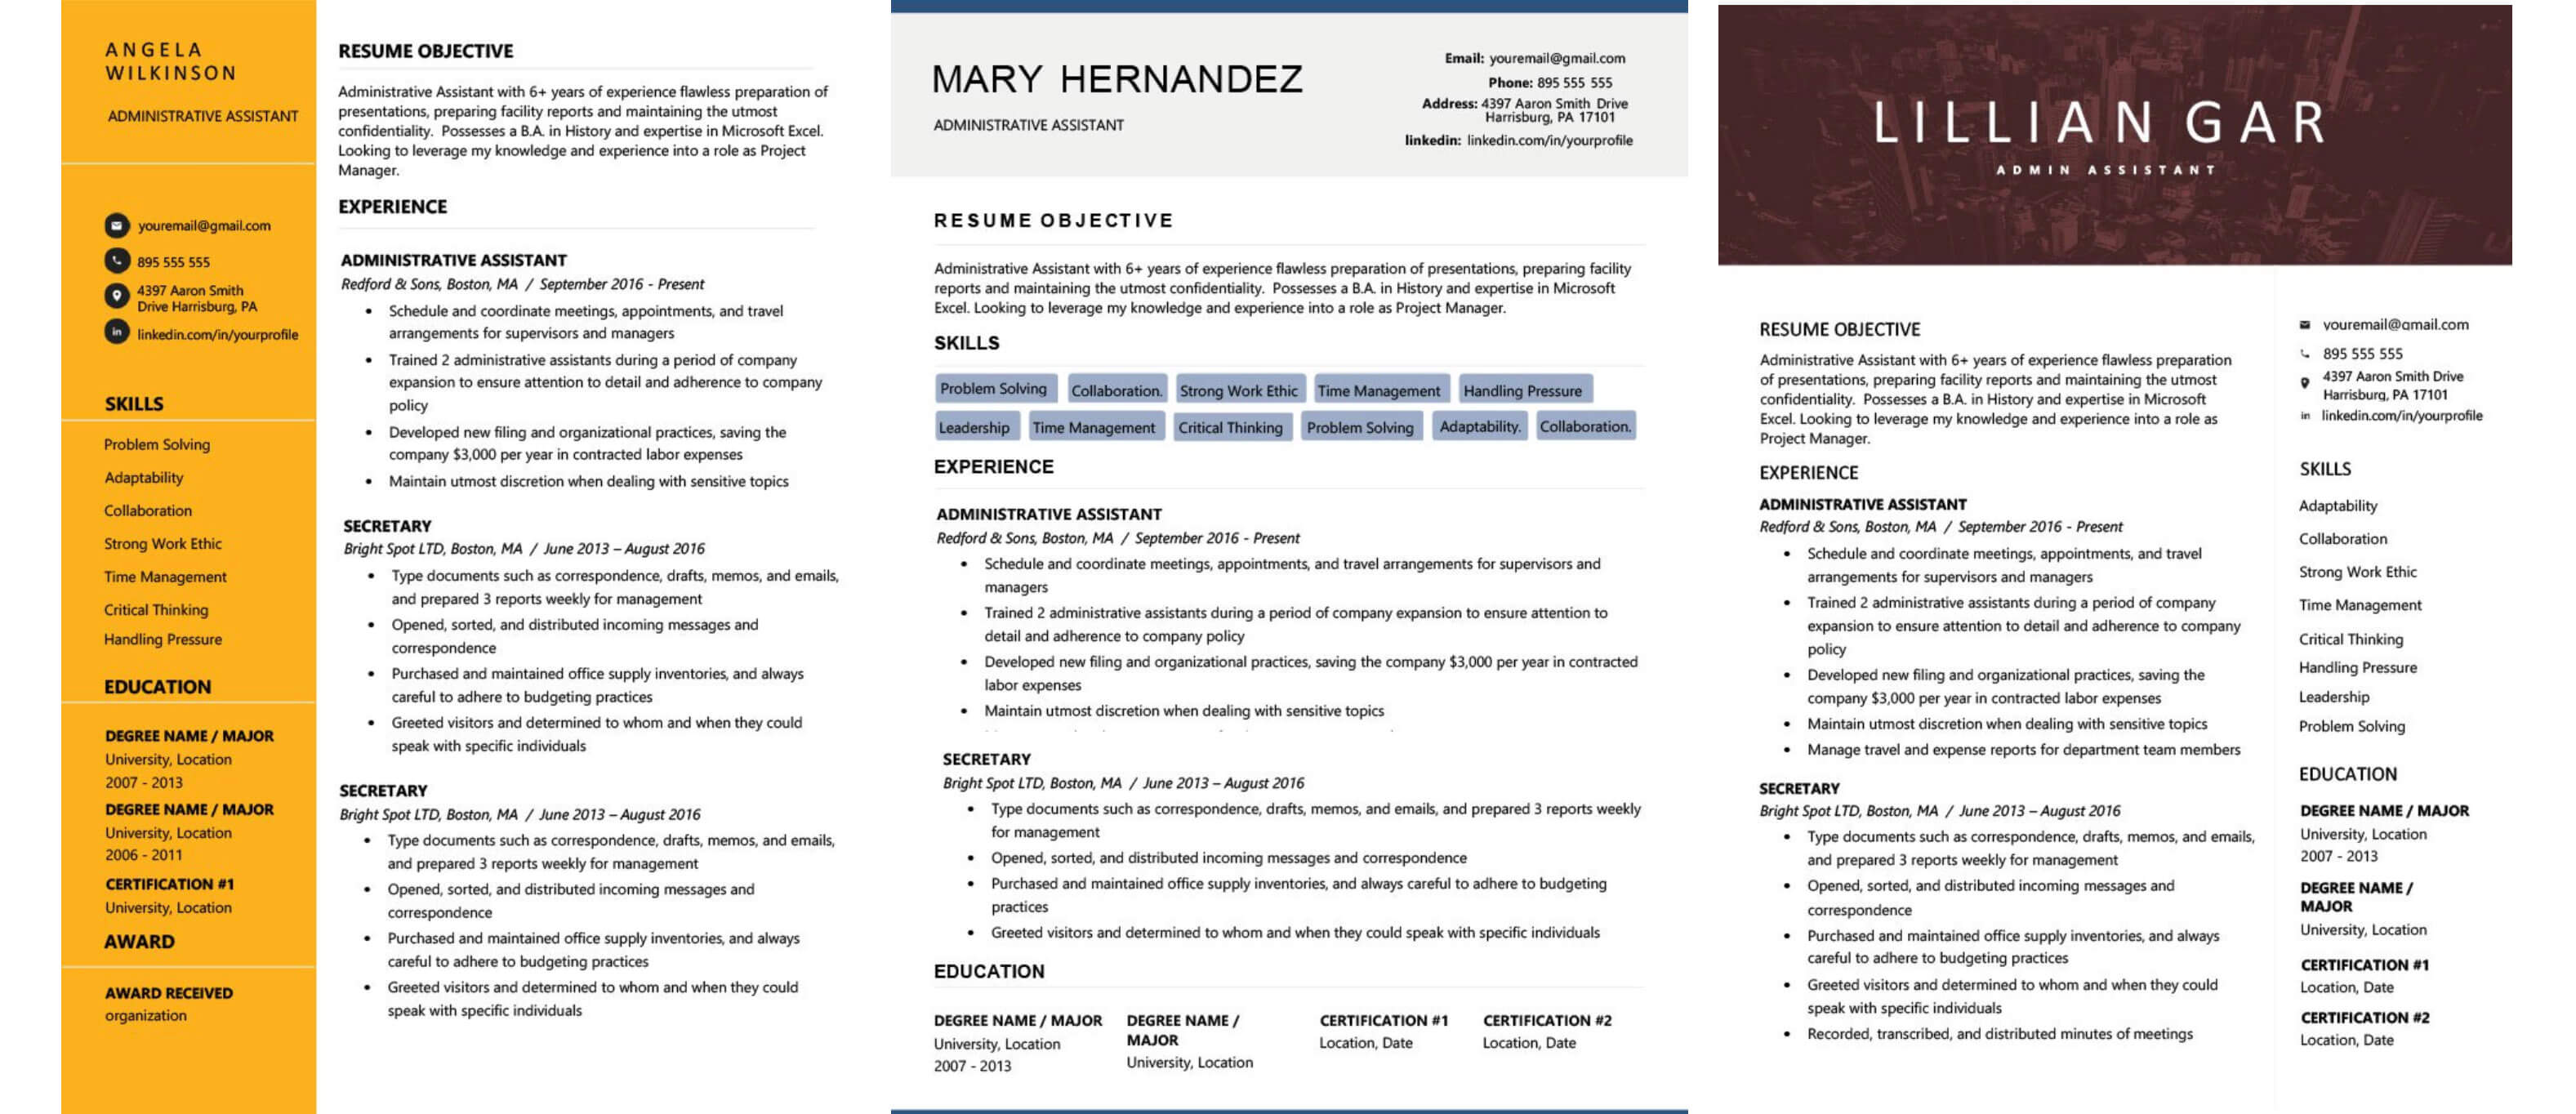 How To Write A Great Data Science Resume